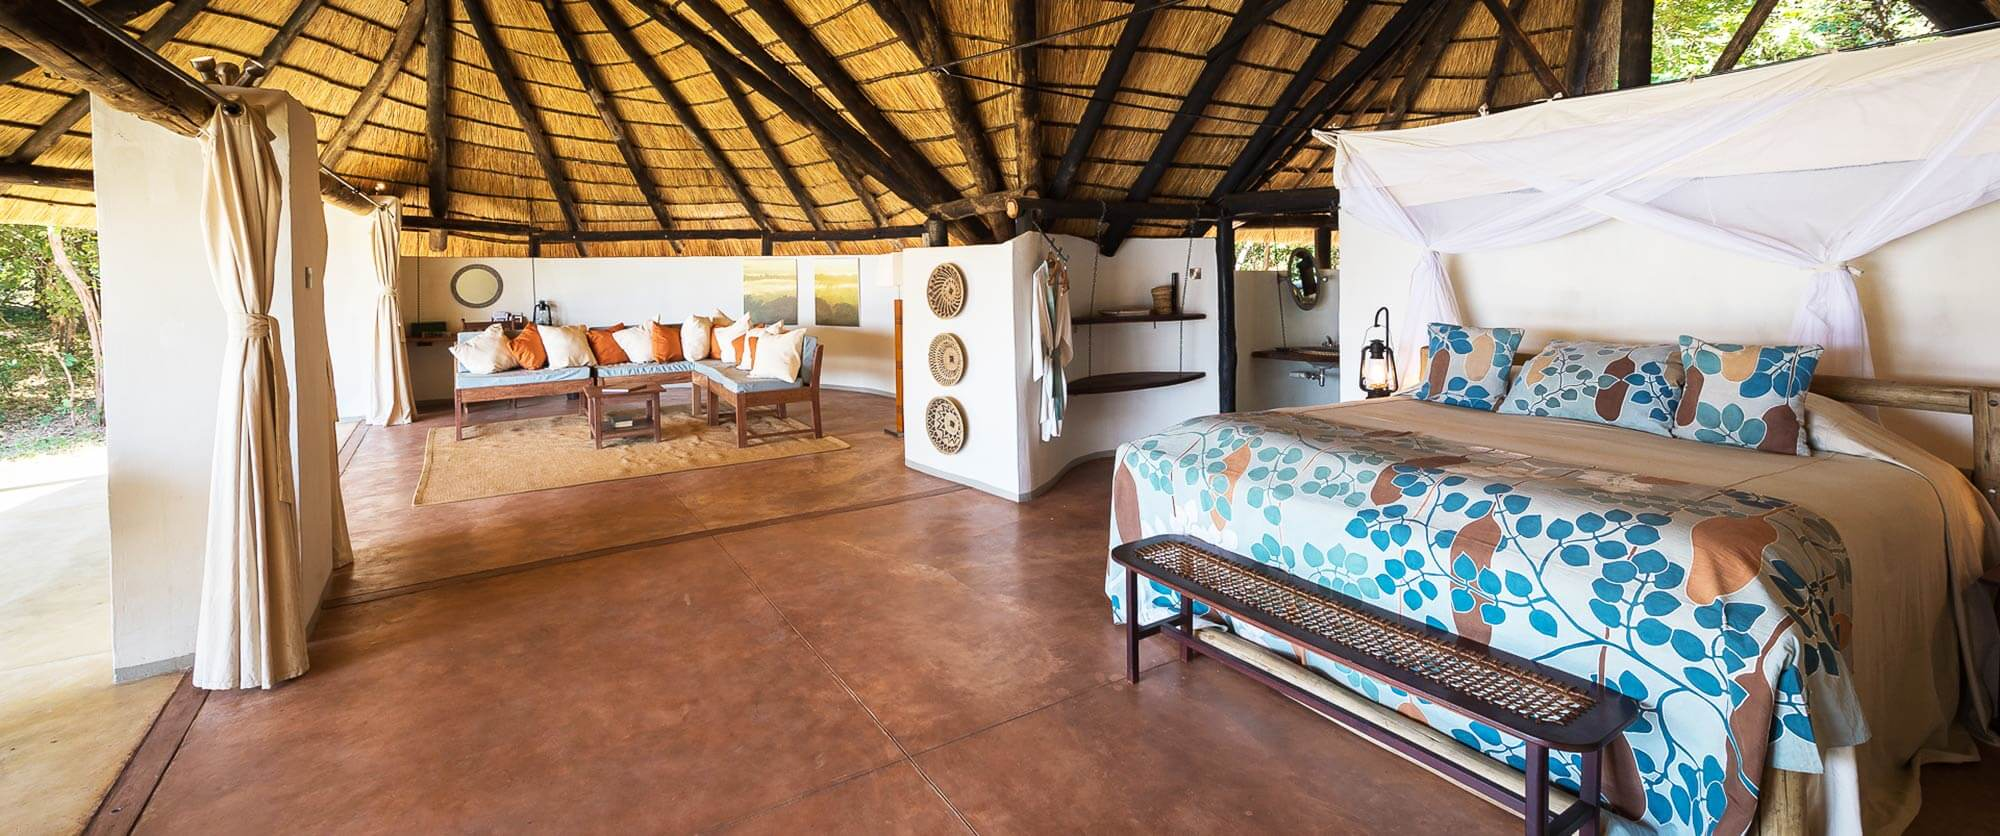 Nkwali Camp South Luangwa National Park - South Luangwa, Mana Pools, and Victoria Falls Adventure Package